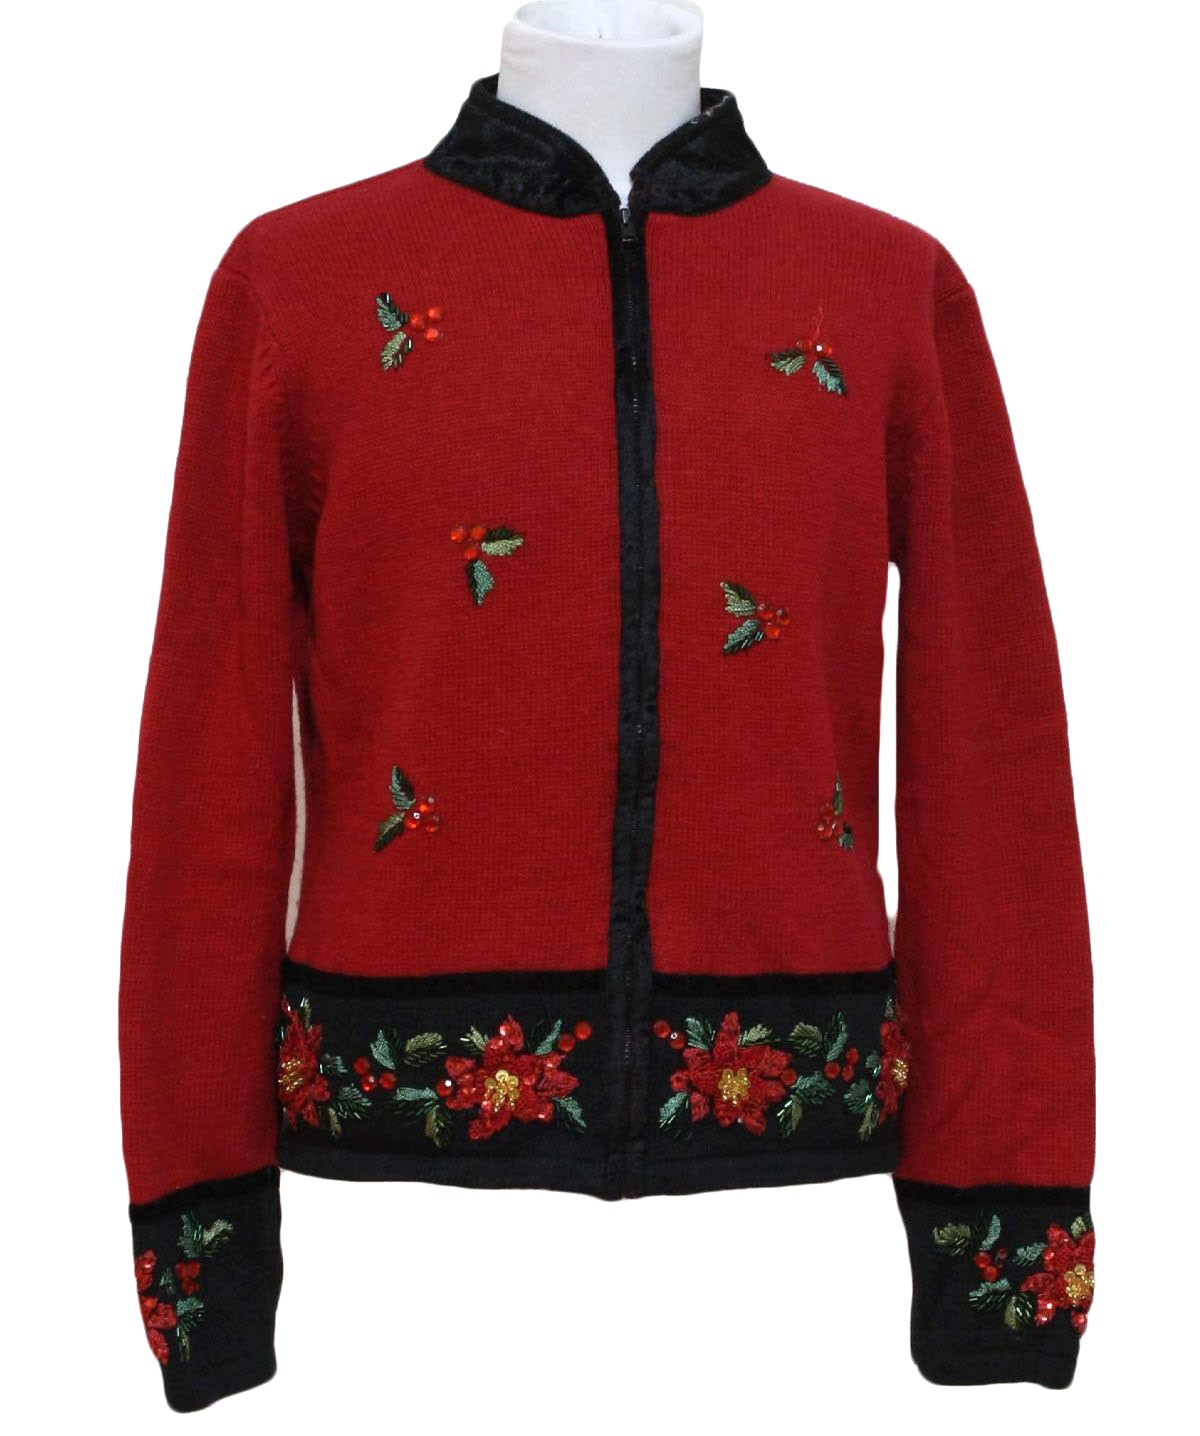 womensgirls ugly christmas sweater carly st claire girls red background cotton ramie blend zip front longsleeve ugly christmas sweater mock turtleneck - Red Ugly Christmas Sweater